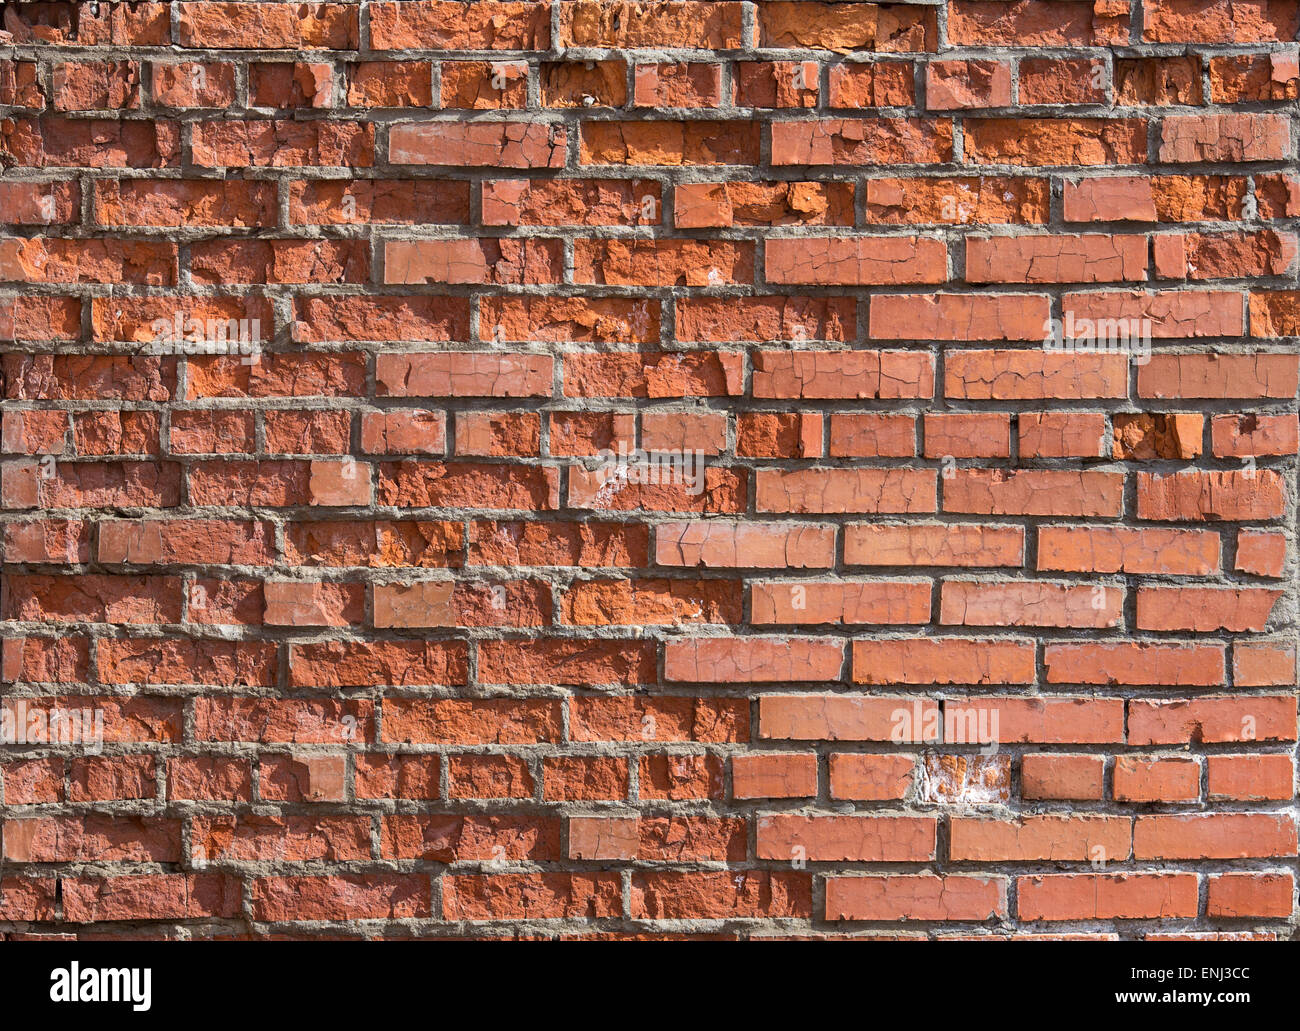 cracked worn red brick wall background Stock Photo